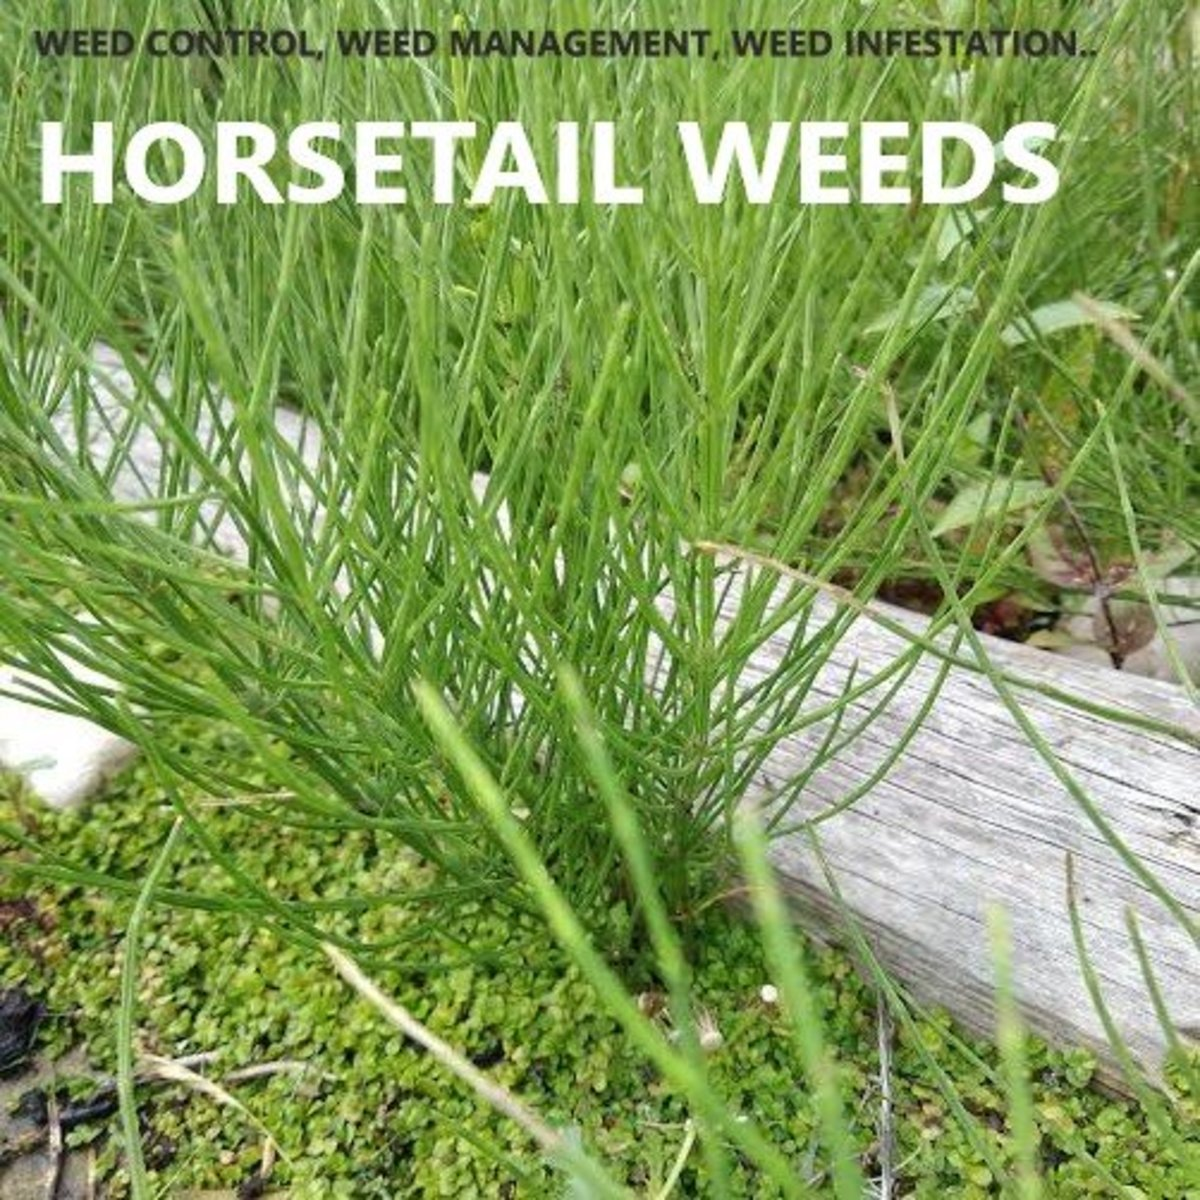 Horsetail weeds specialize in crowding out flower beds and exploiting gaps and cracks in paving.